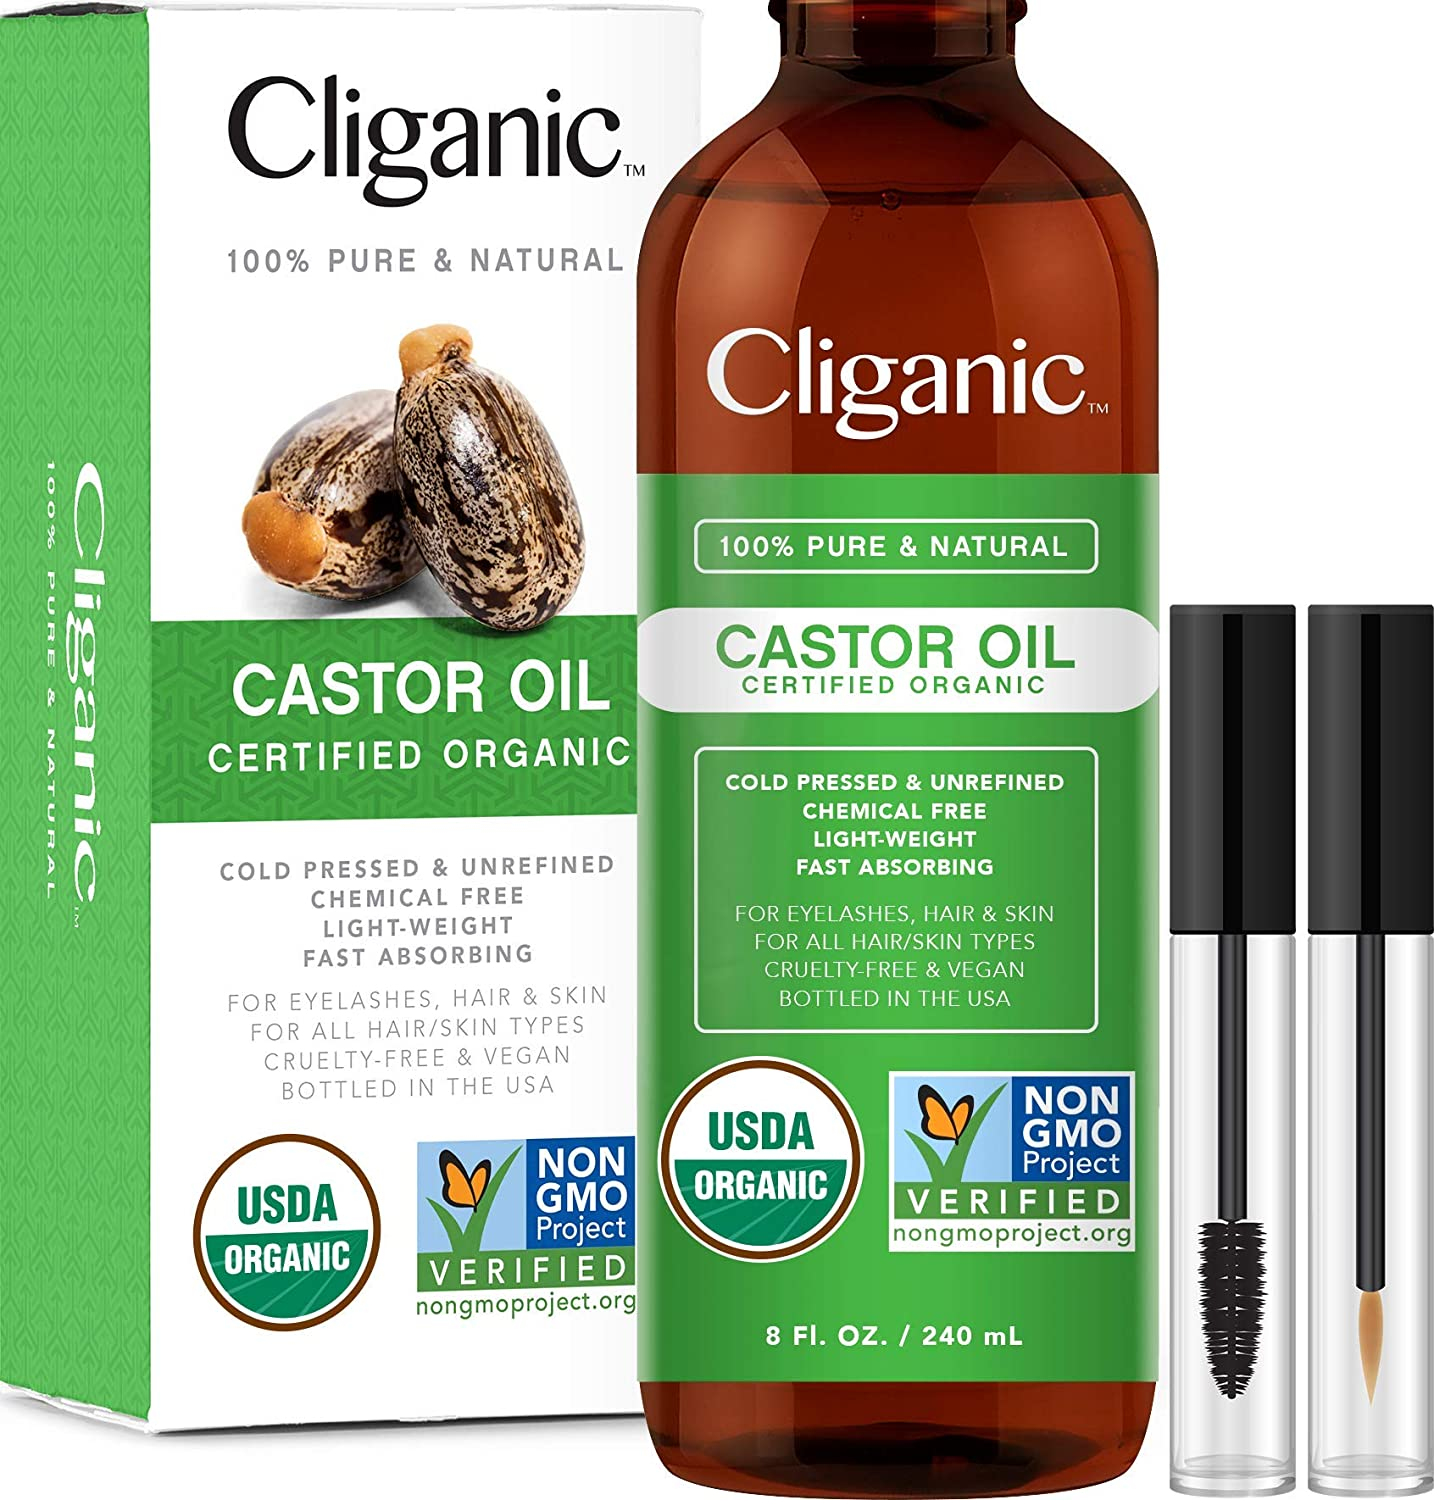 Cliganic USDA Organic Castor Oil, 100% Pure with Eyelash Kit (8oz) | For Eyelashes, Eyebrows, Hair & Skin | Natural Cold Pressed Unrefined Hexane-Free | DIY Carrier Oil | Cliganic 90 Days Warranty